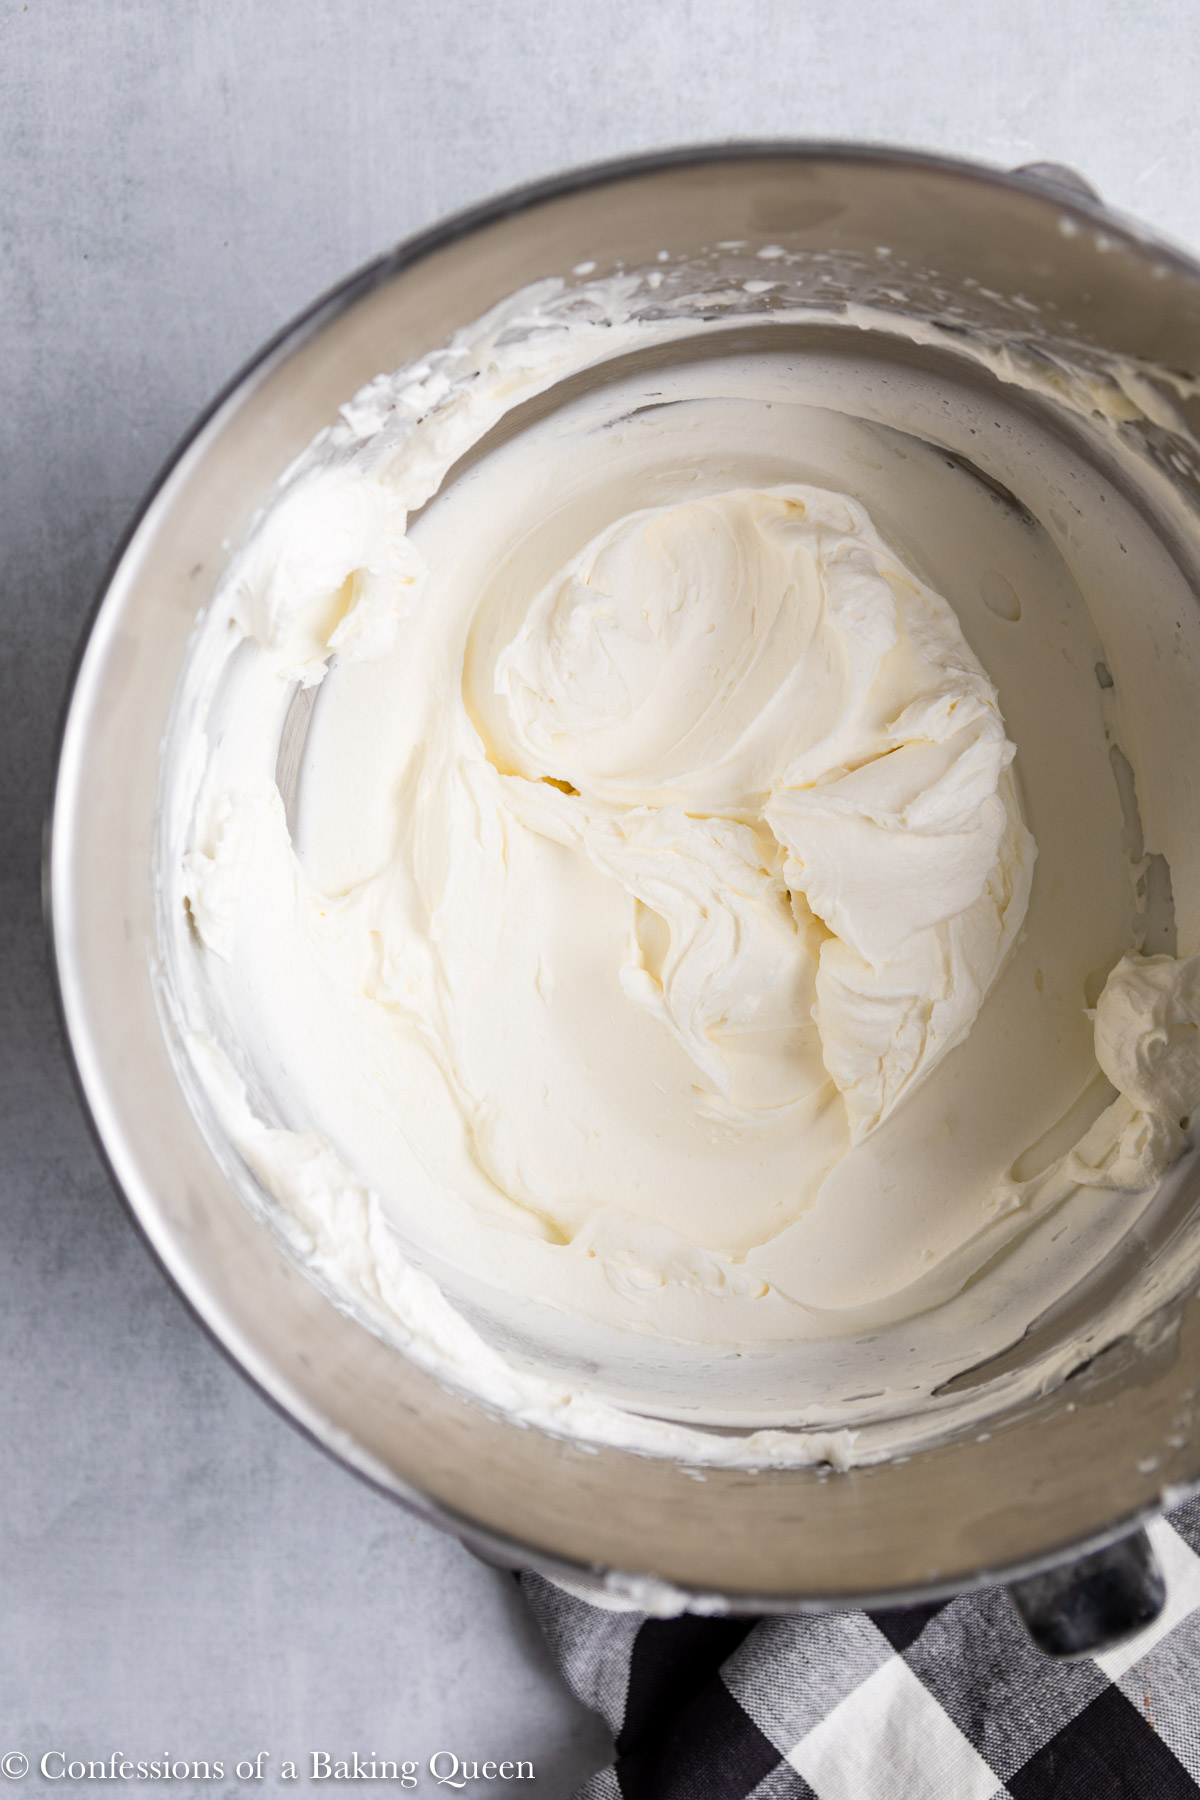 cream cheese whipped cream frosting- in a metal bowl with a wire whisk on a grey surface with a white and black linen